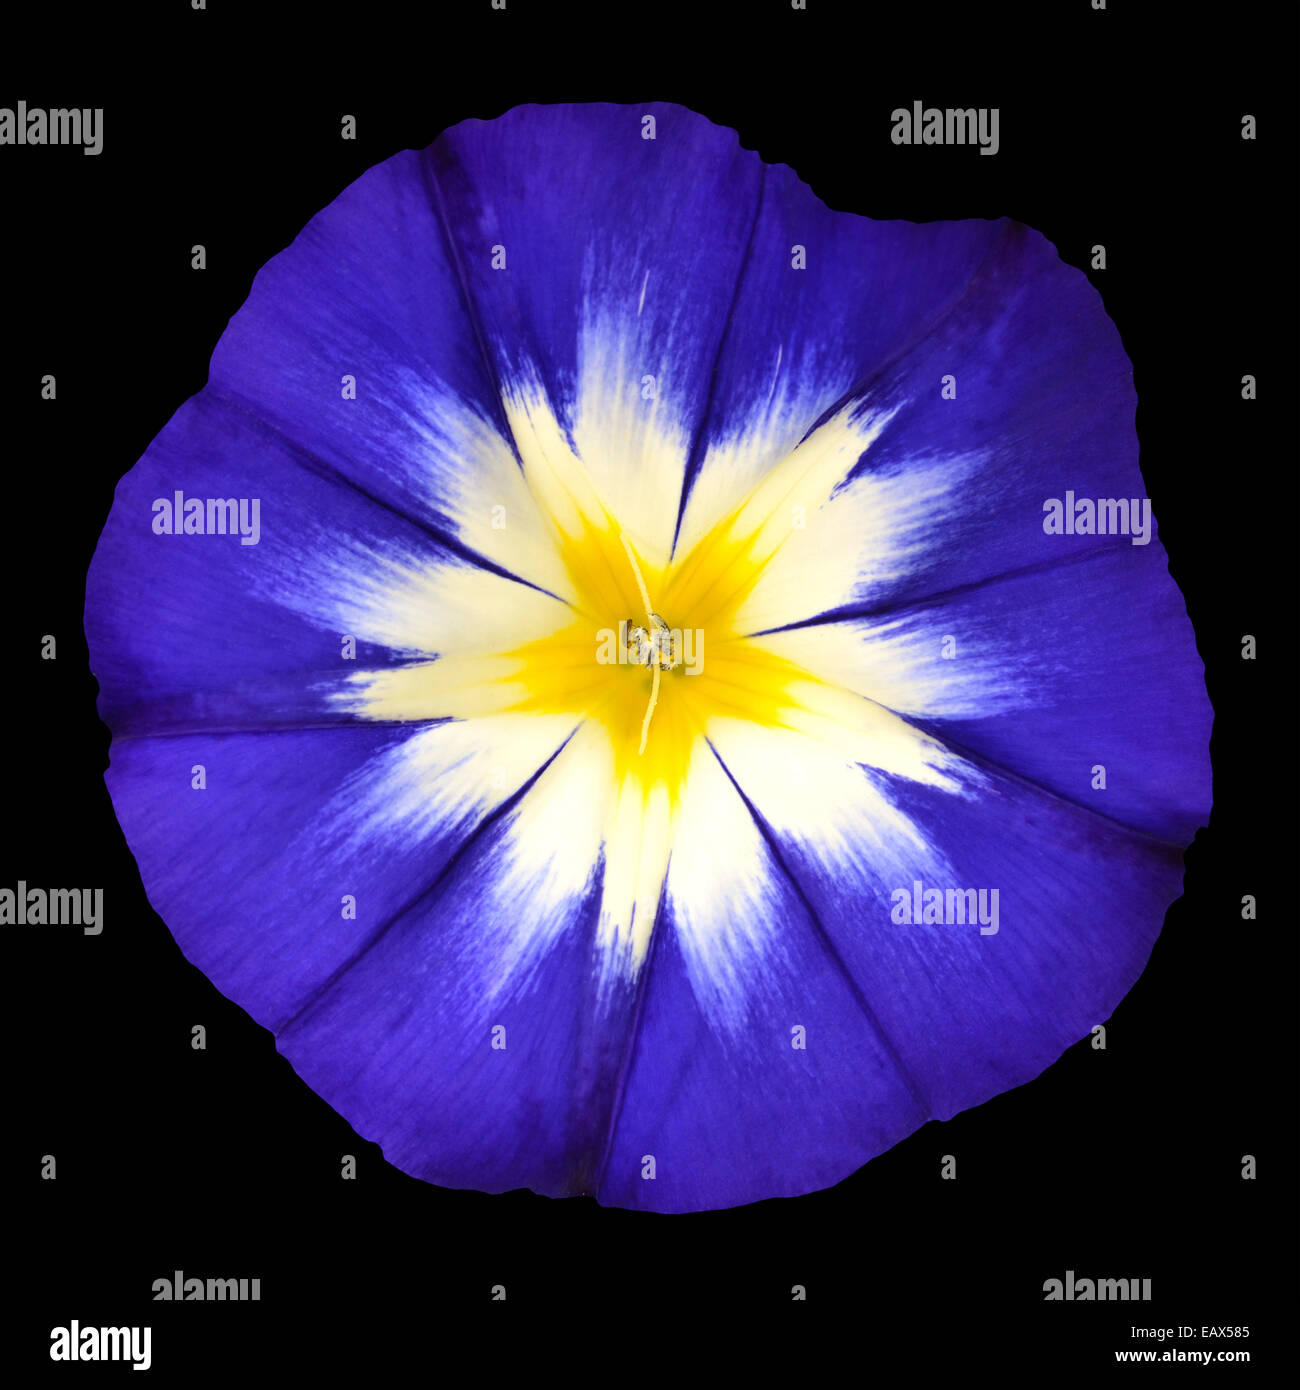 Blue Flower With White Yellow Star Shaped Center Isolated On Black